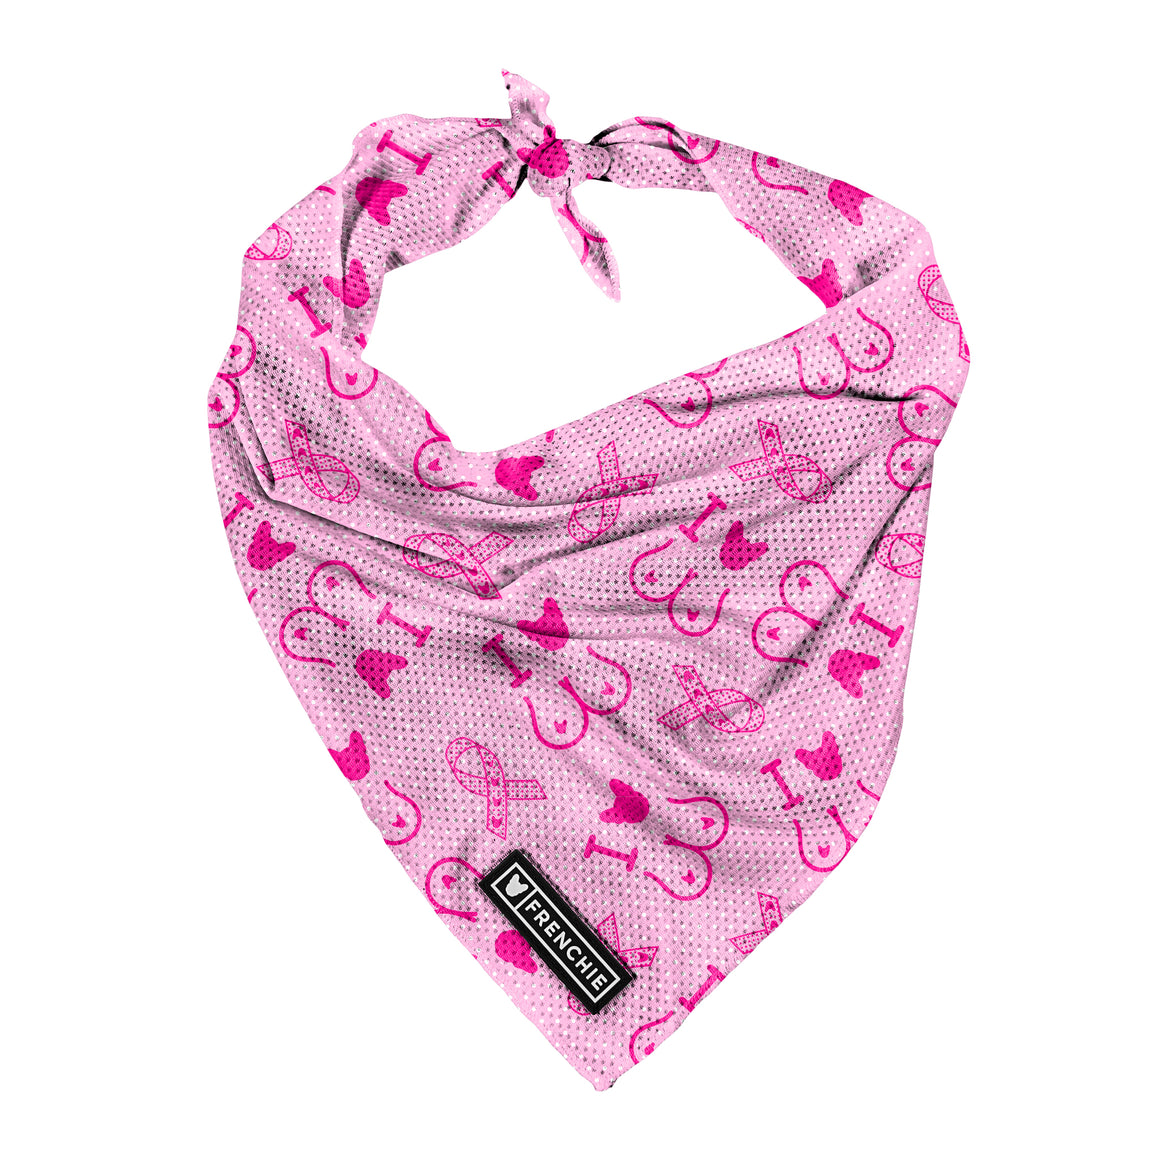 Frenchie Cooling Bandana - Save The Ta-Tas